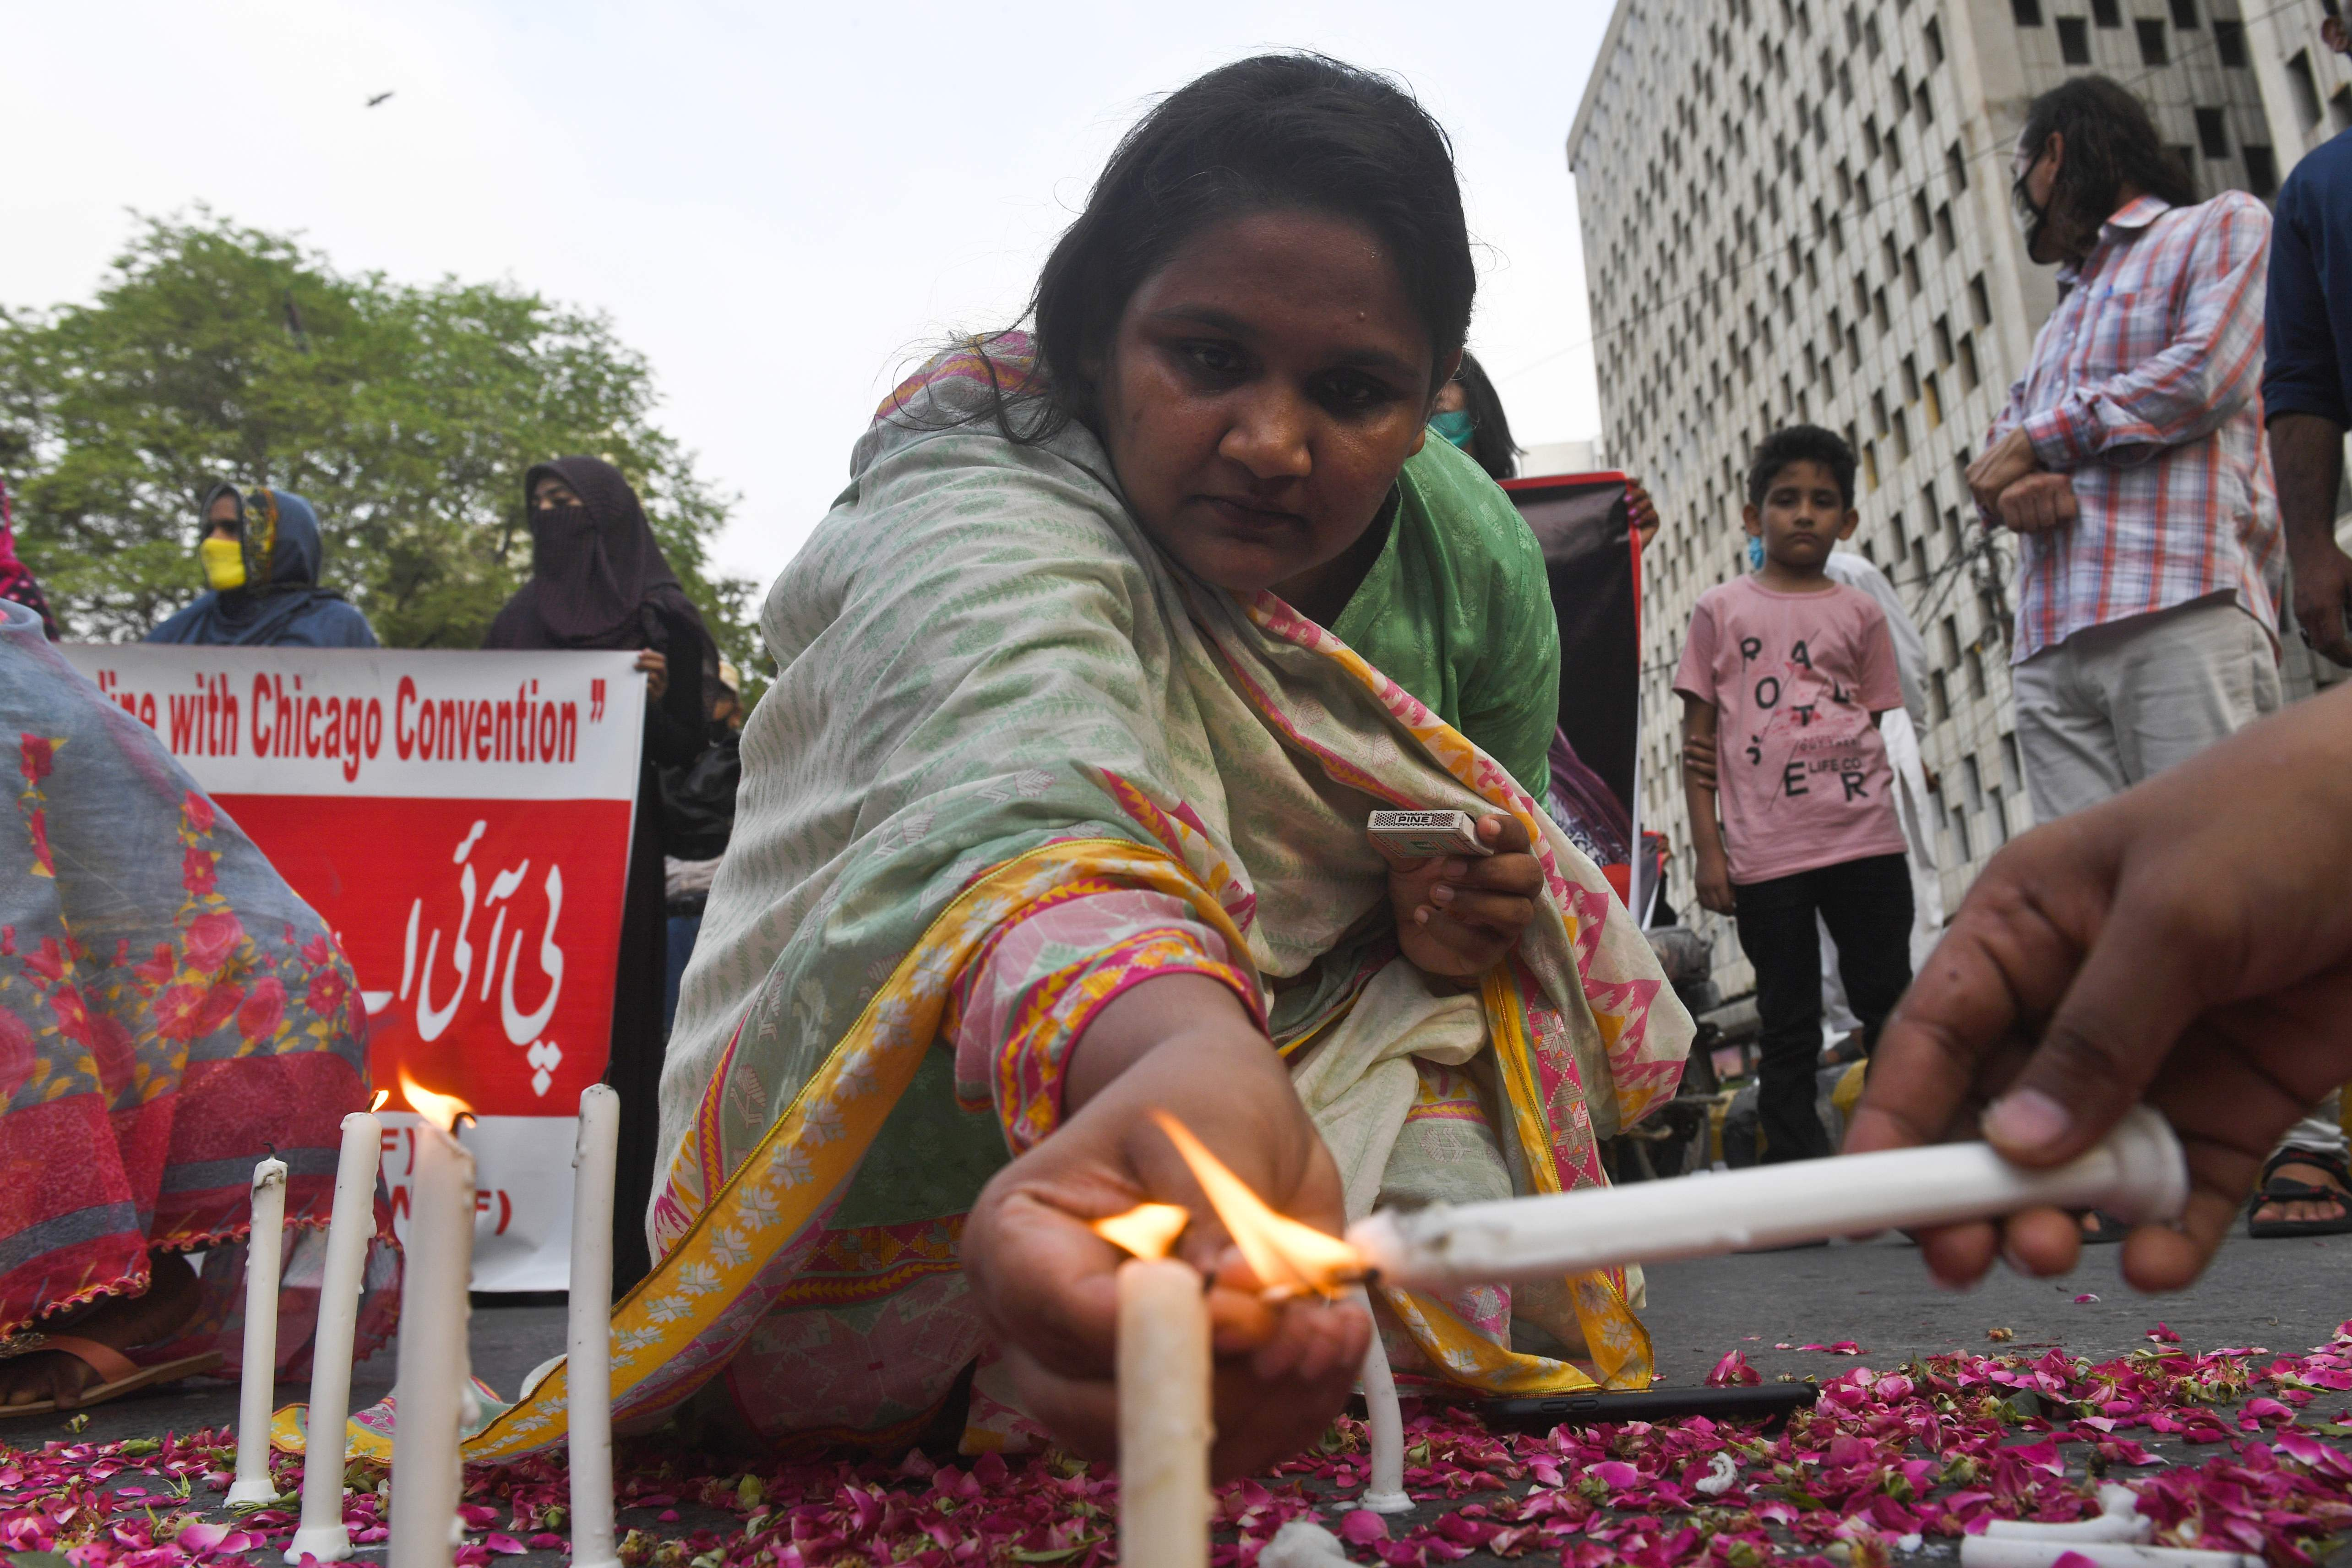 Trade union and civil society activists light candles in Karachi on May 28, 2020, during a candlelight vigil for the victims of the Pakistan International Airlines (PIA) plane crash on May 22. (AFP Photo)